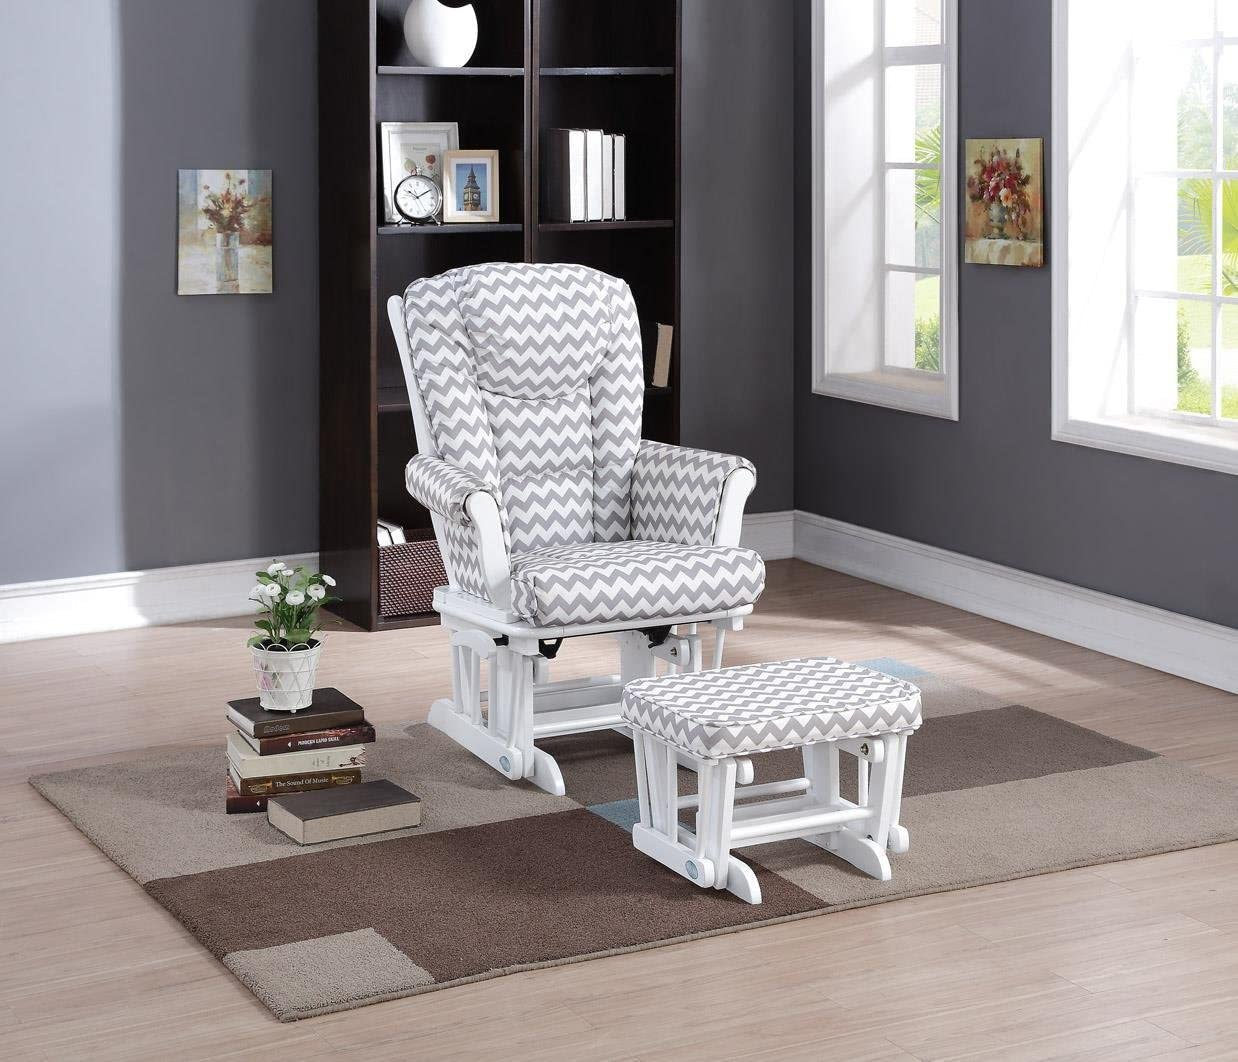 Naomi Home Deluxe Multiposition Sleigh Glider and Ottoman Set White Gray Chevron